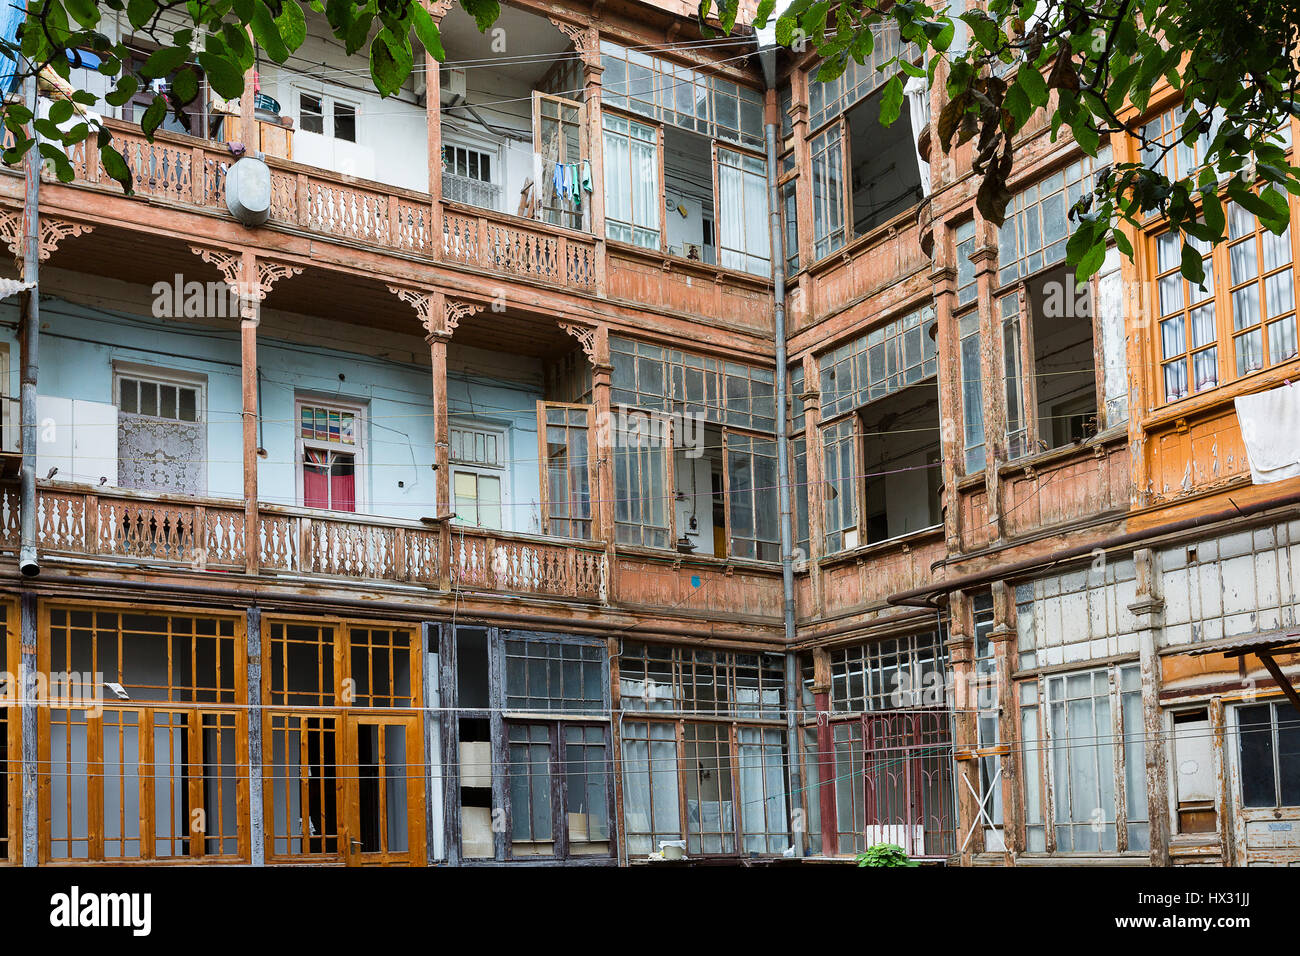 Old houses from the Soviet times in Tbilisi, Georgia - Stock Image